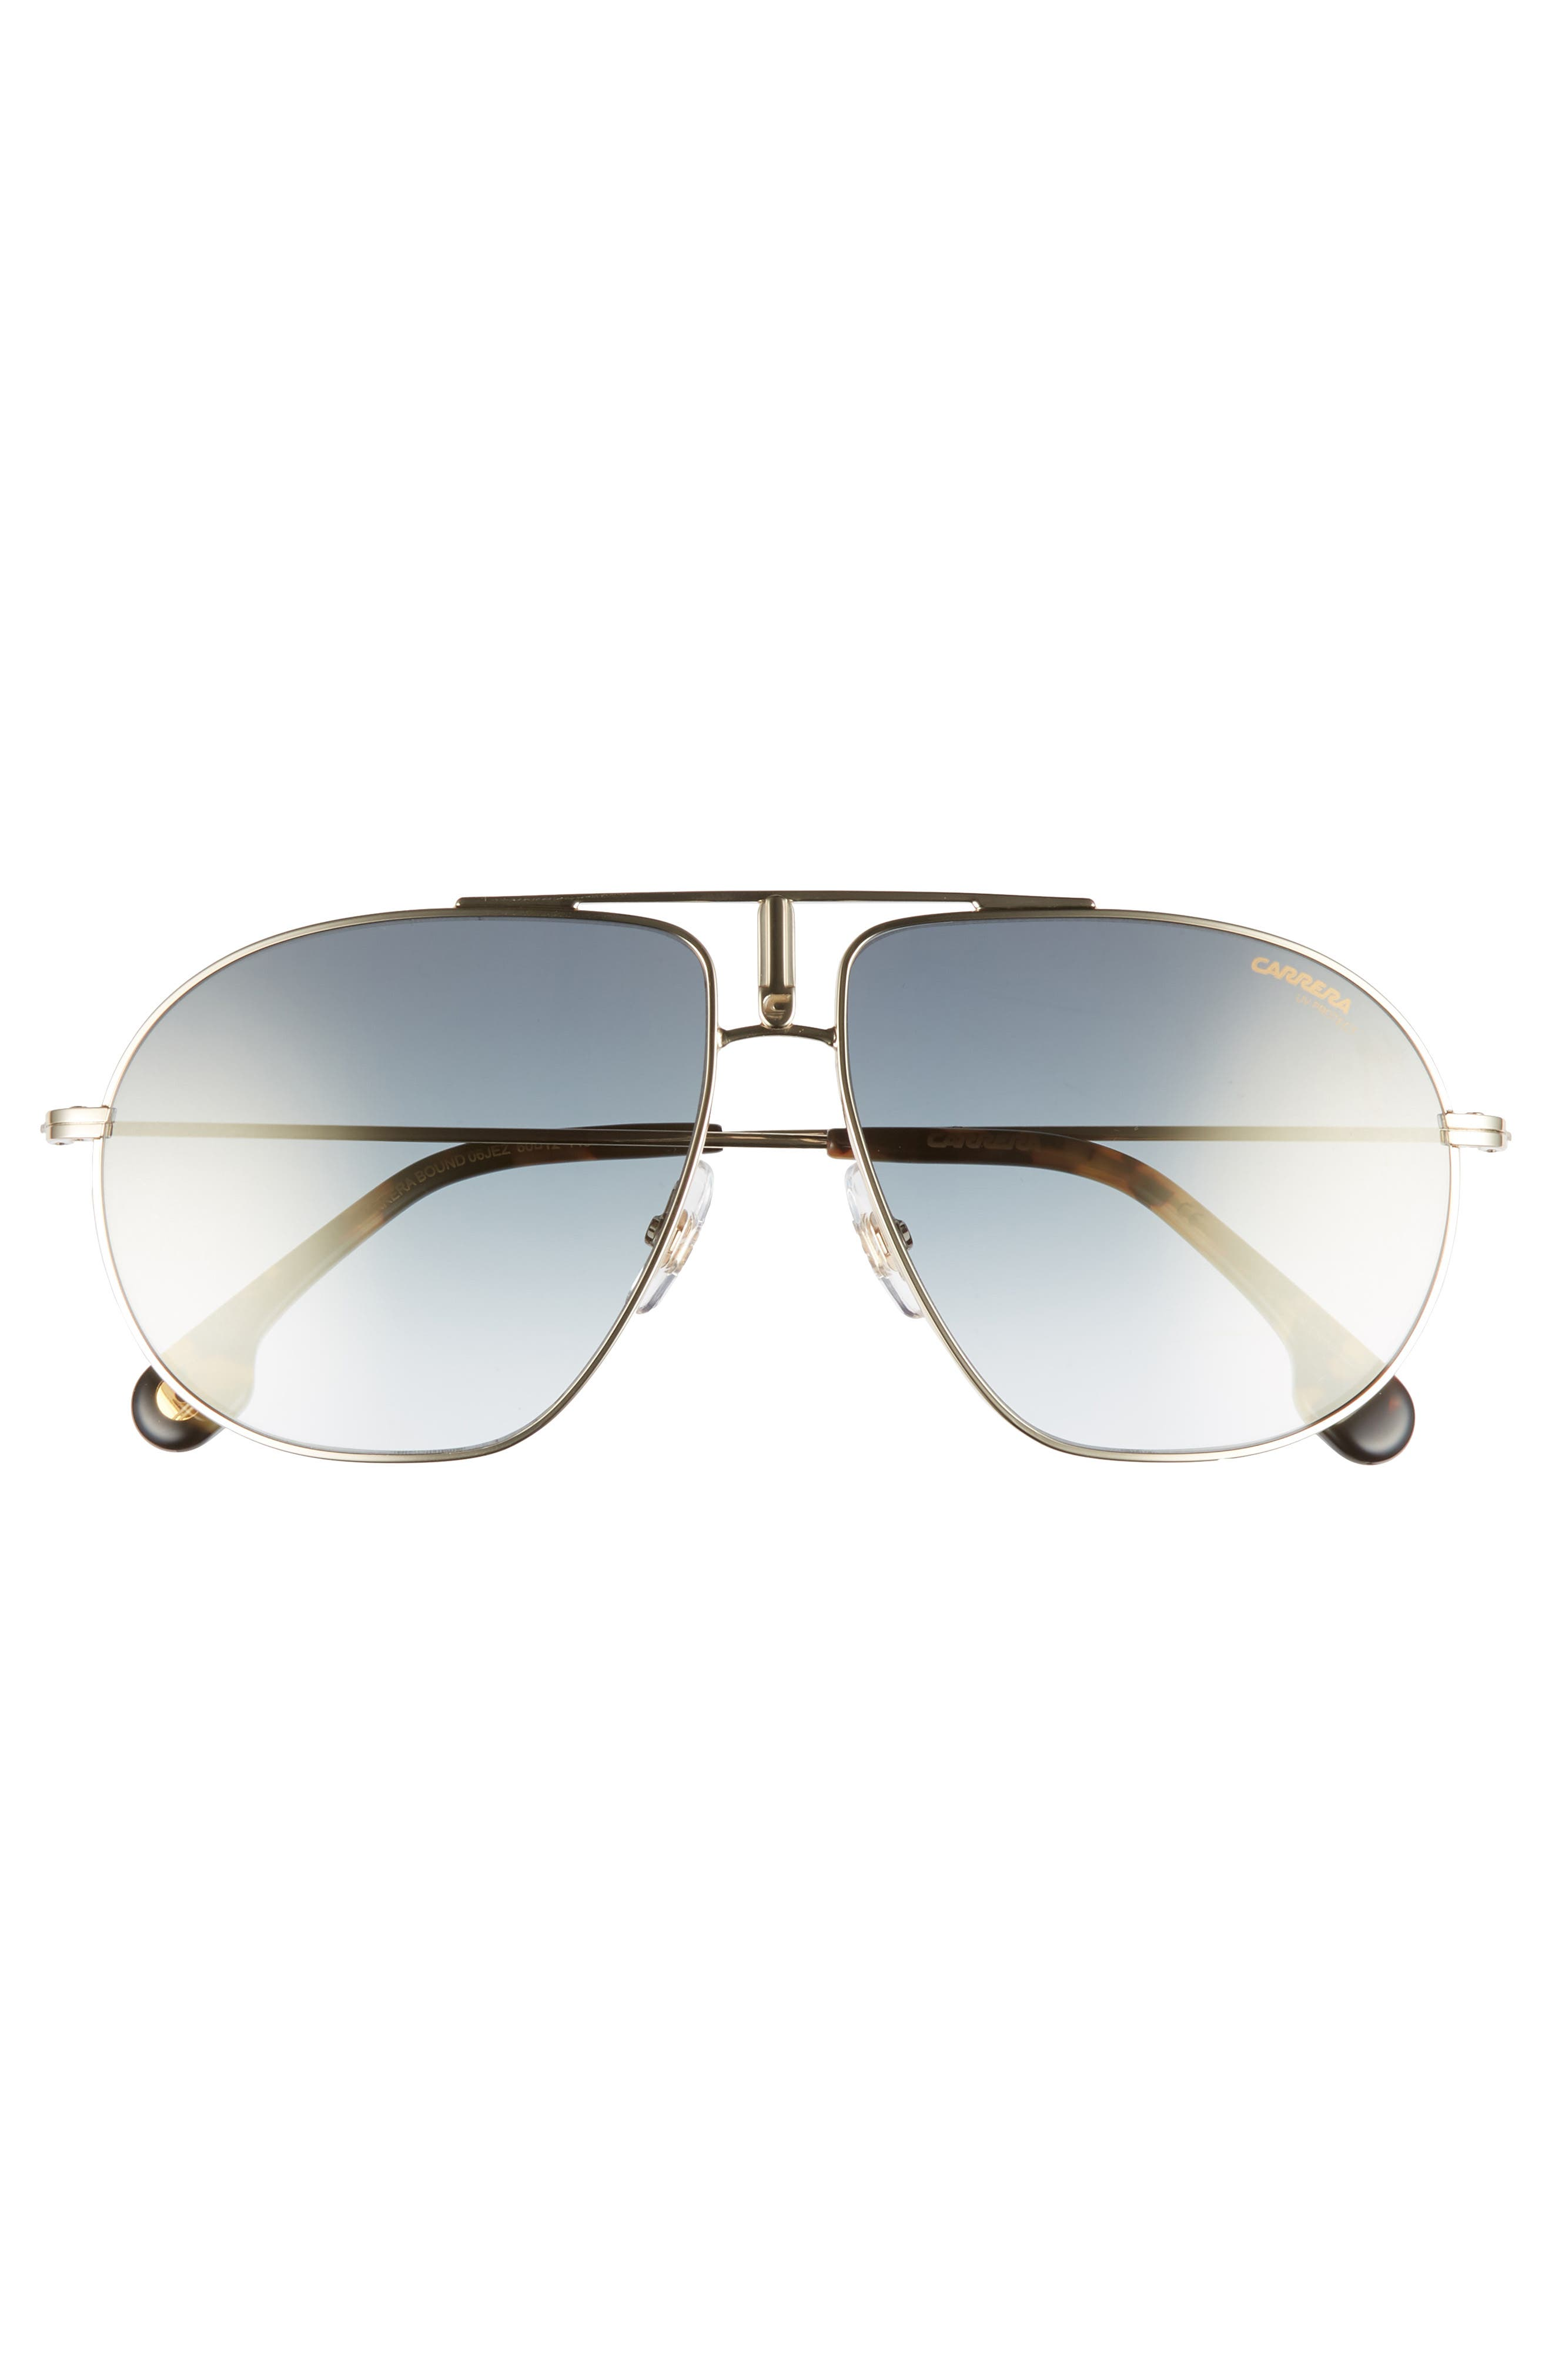 CARRERA EYEWEAR,                             Bounds 60mm Gradient Aviator Sunglasses,                             Alternate thumbnail 2, color,                             GOLD